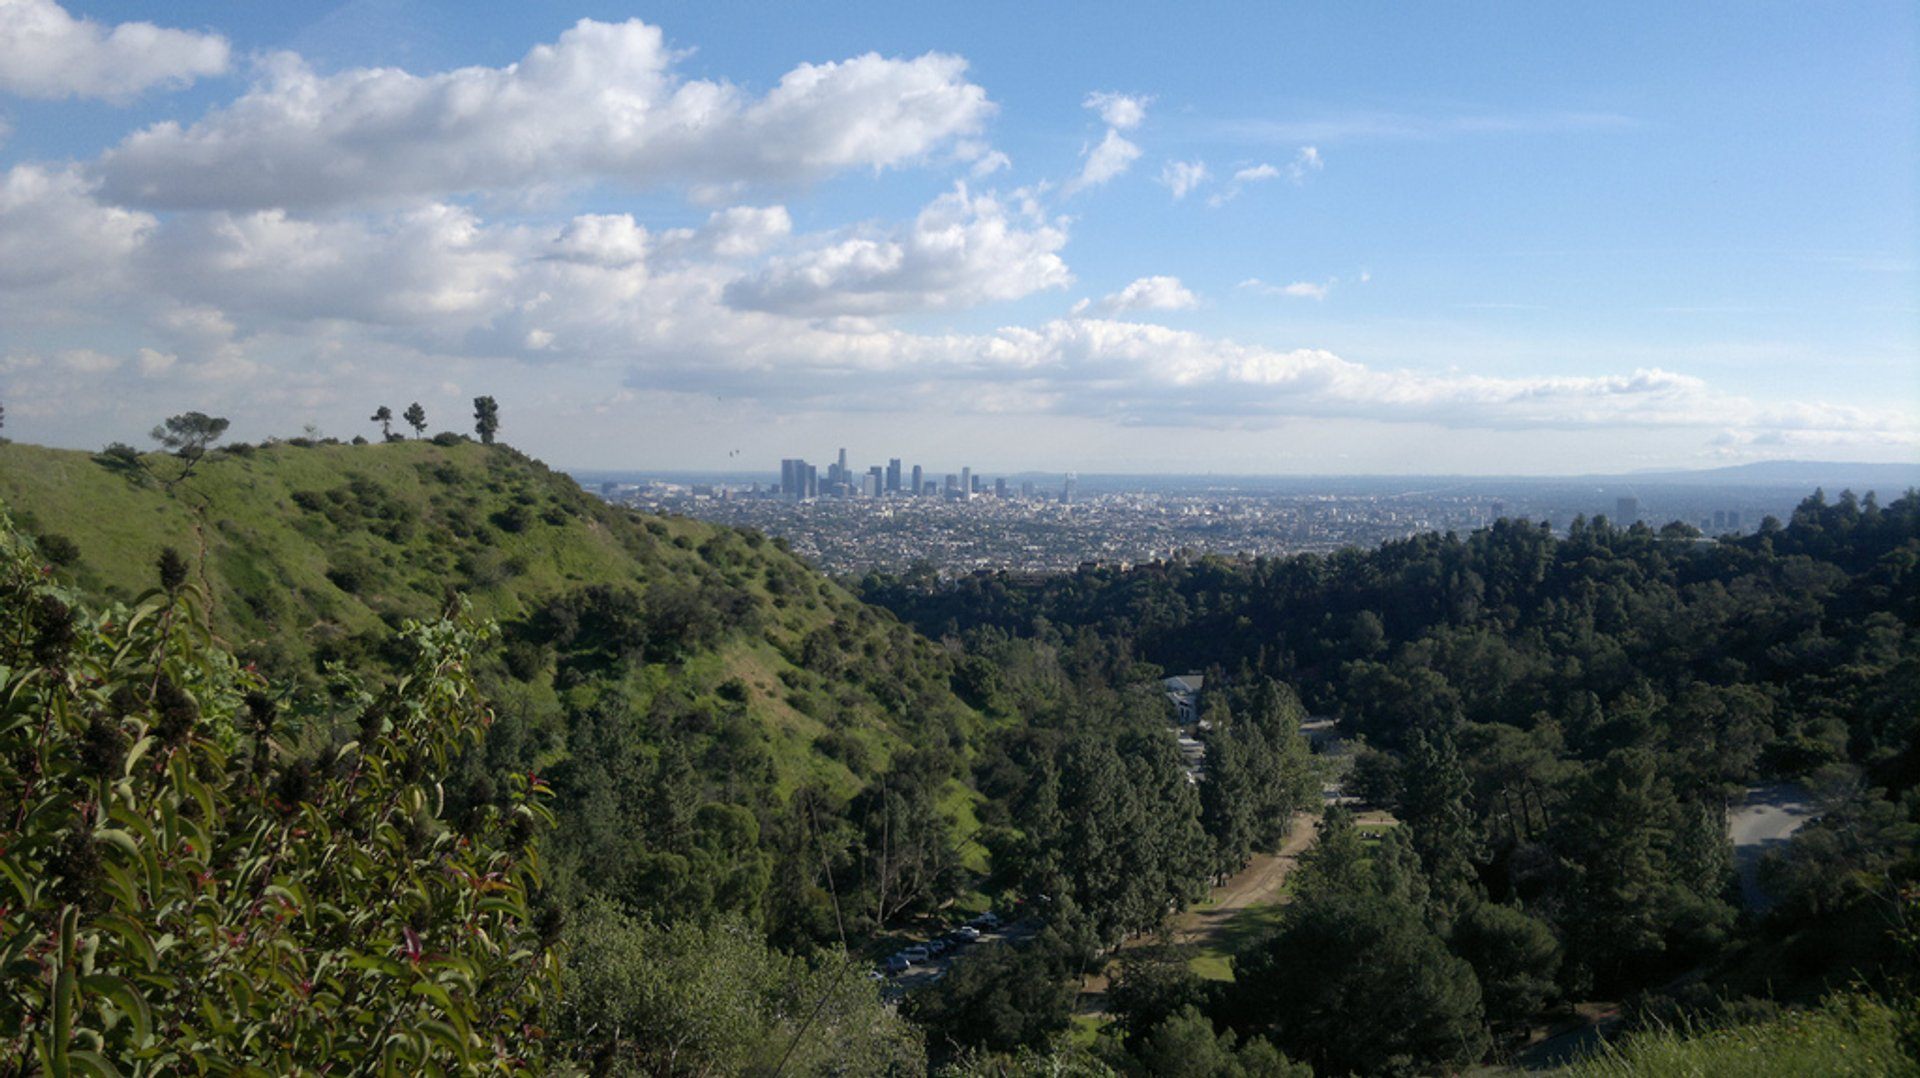 Hiking  in Los Angeles - Best Season 2020